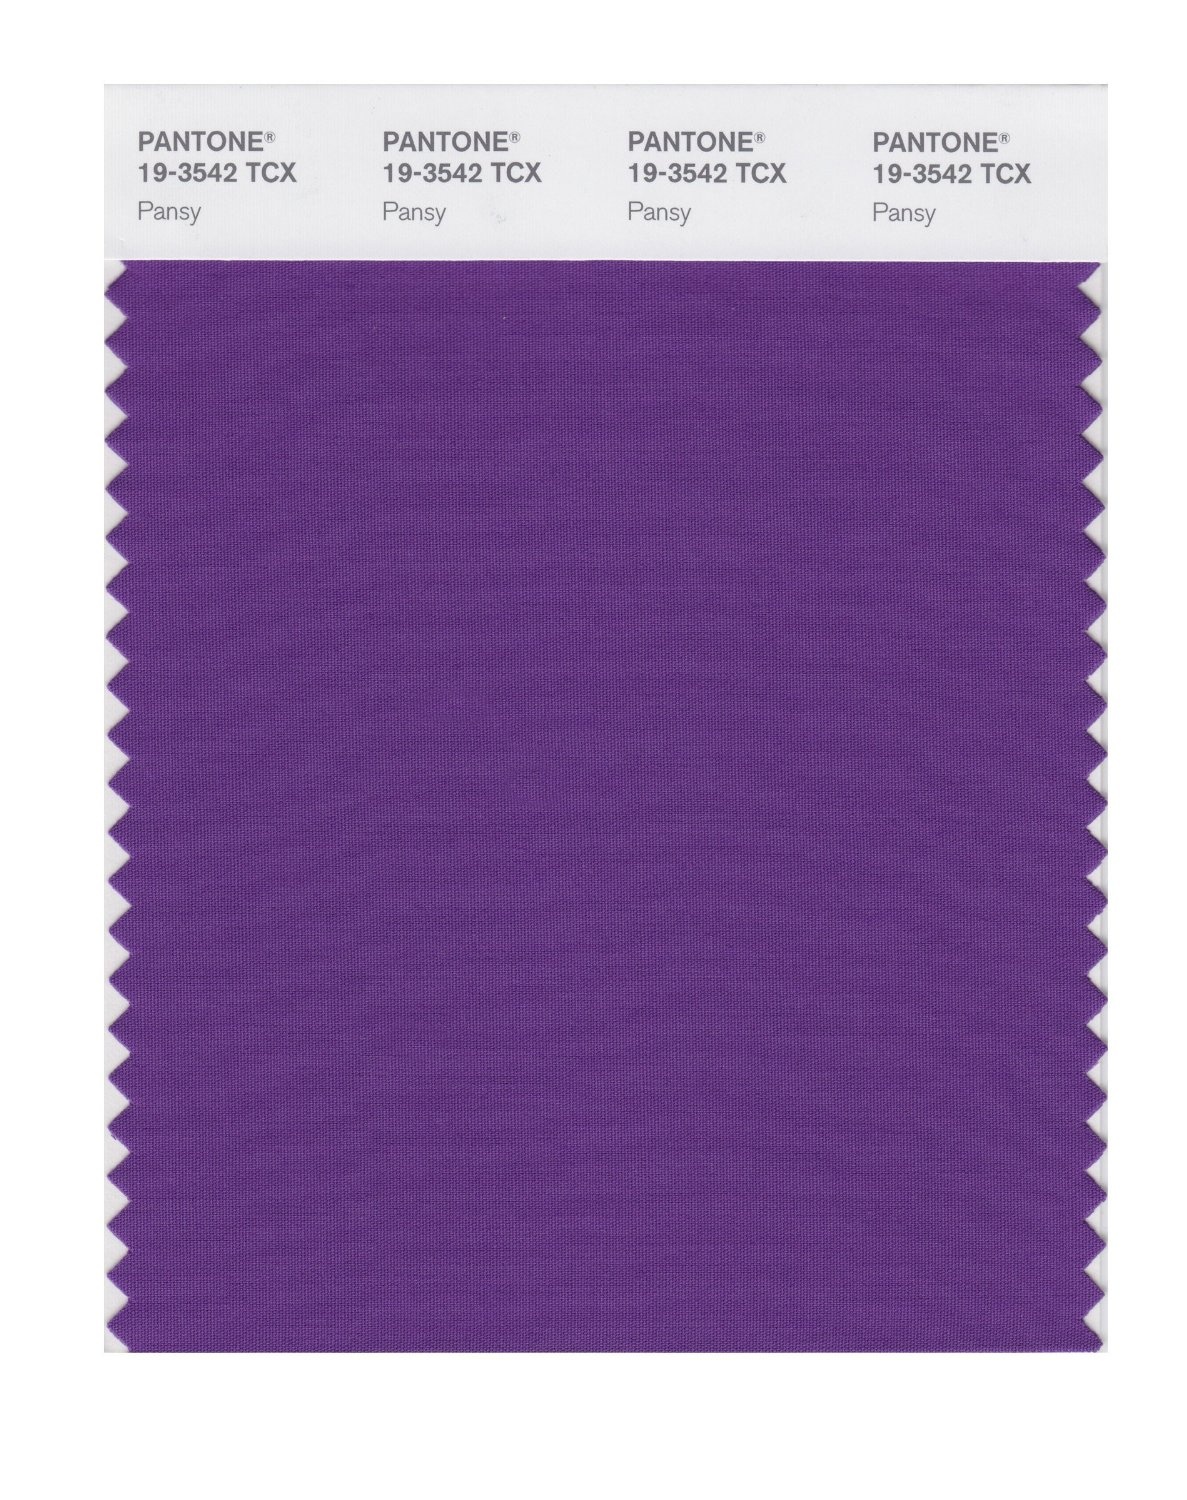 Pantone Smart Swatch 19-3542 Pansy